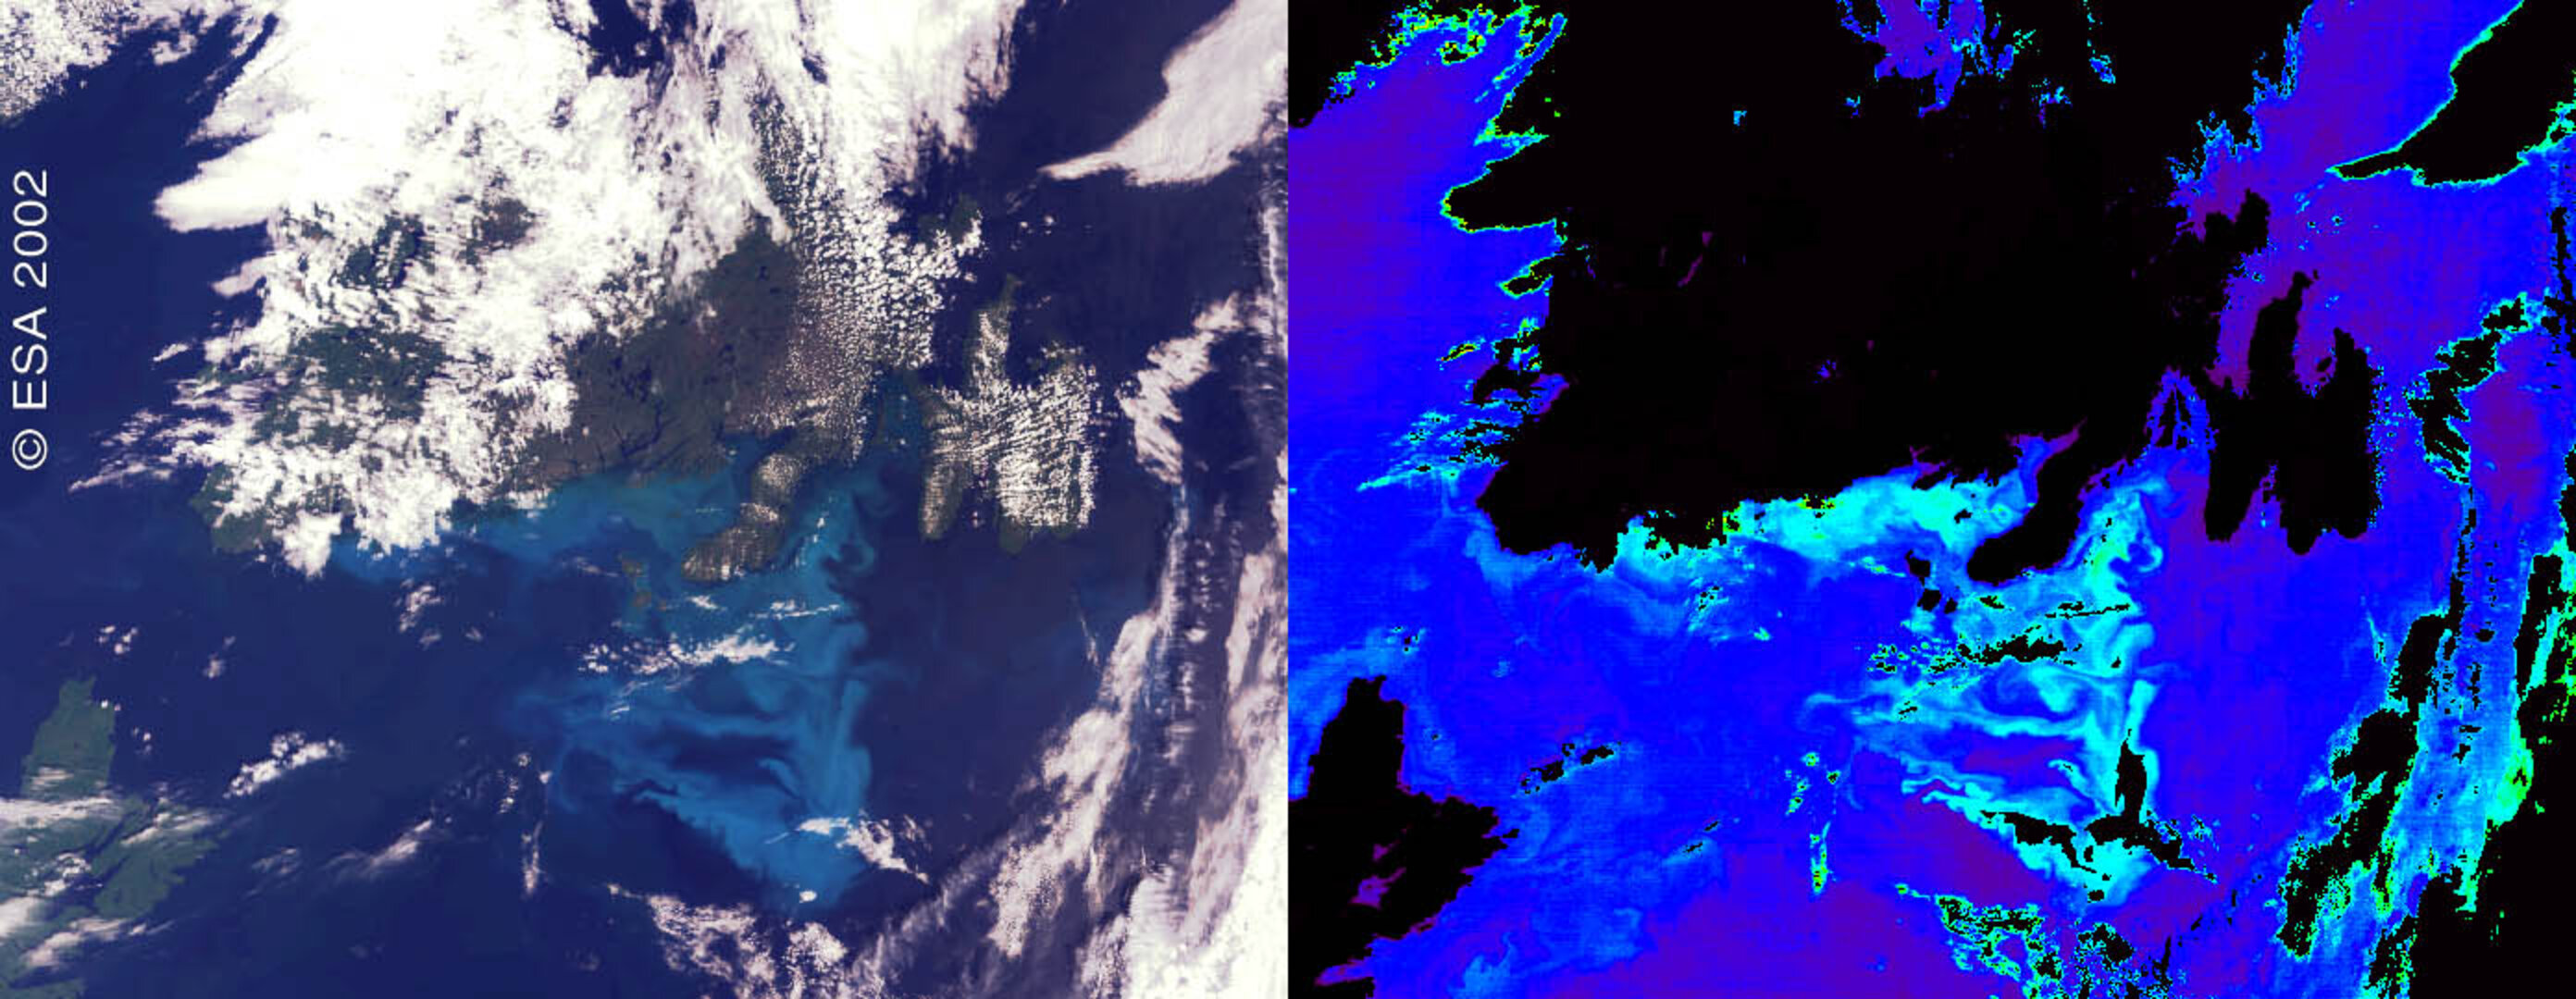 Two contrasting views of the Canadian phytoplankton bloom